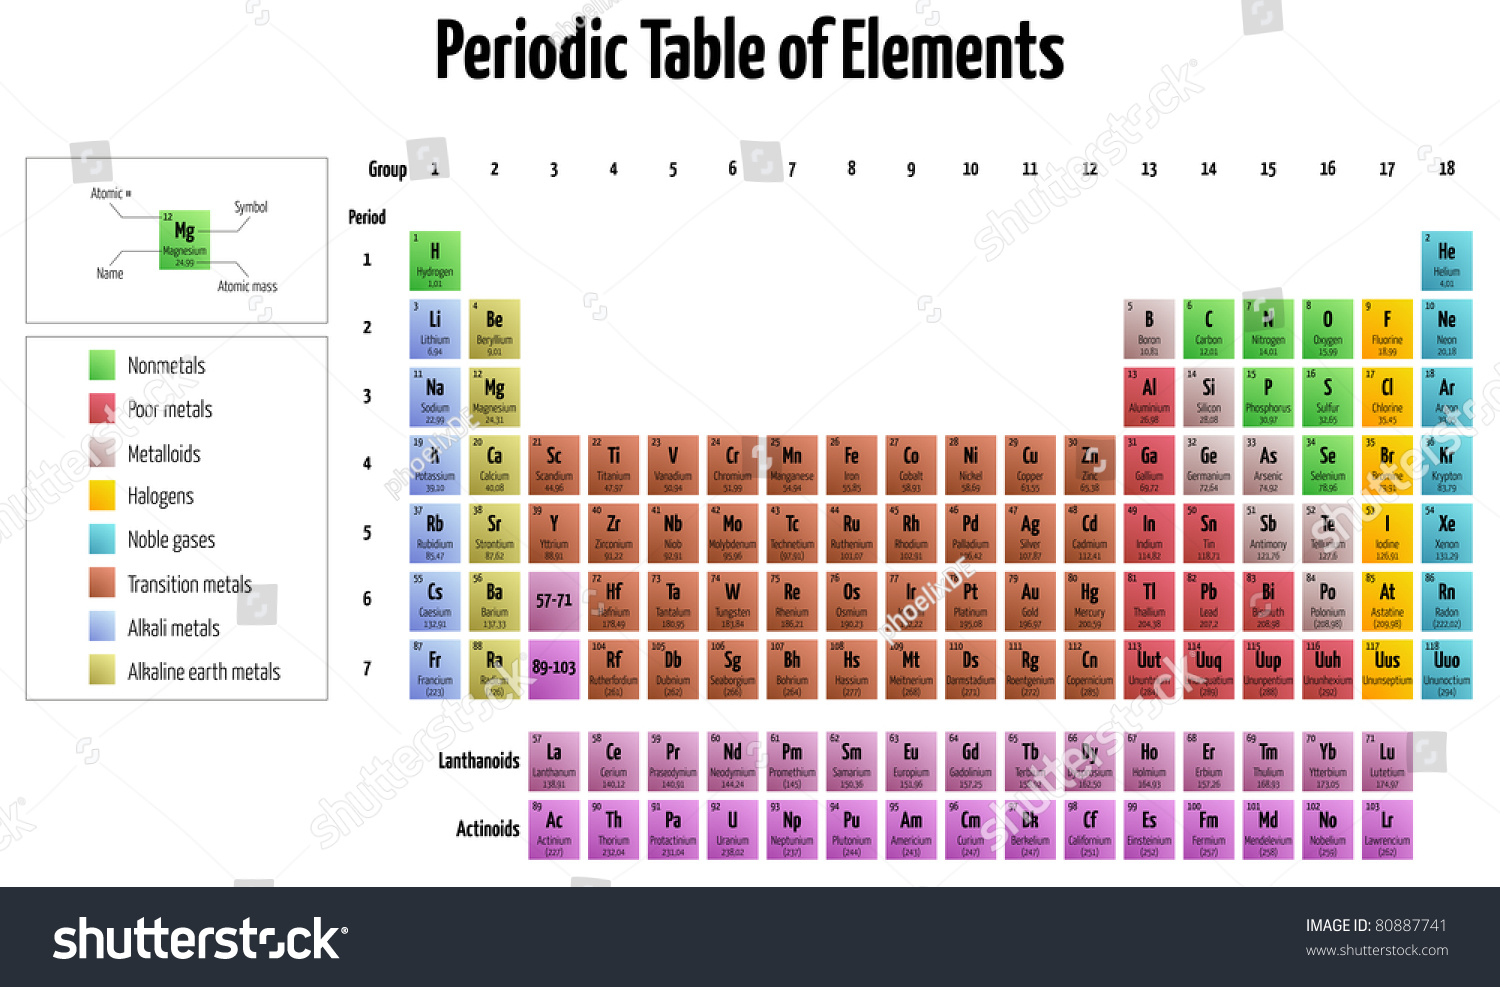 Detailed illustration periodic table elements stock vector detailed illustration of the periodic table of elements gamestrikefo Choice Image